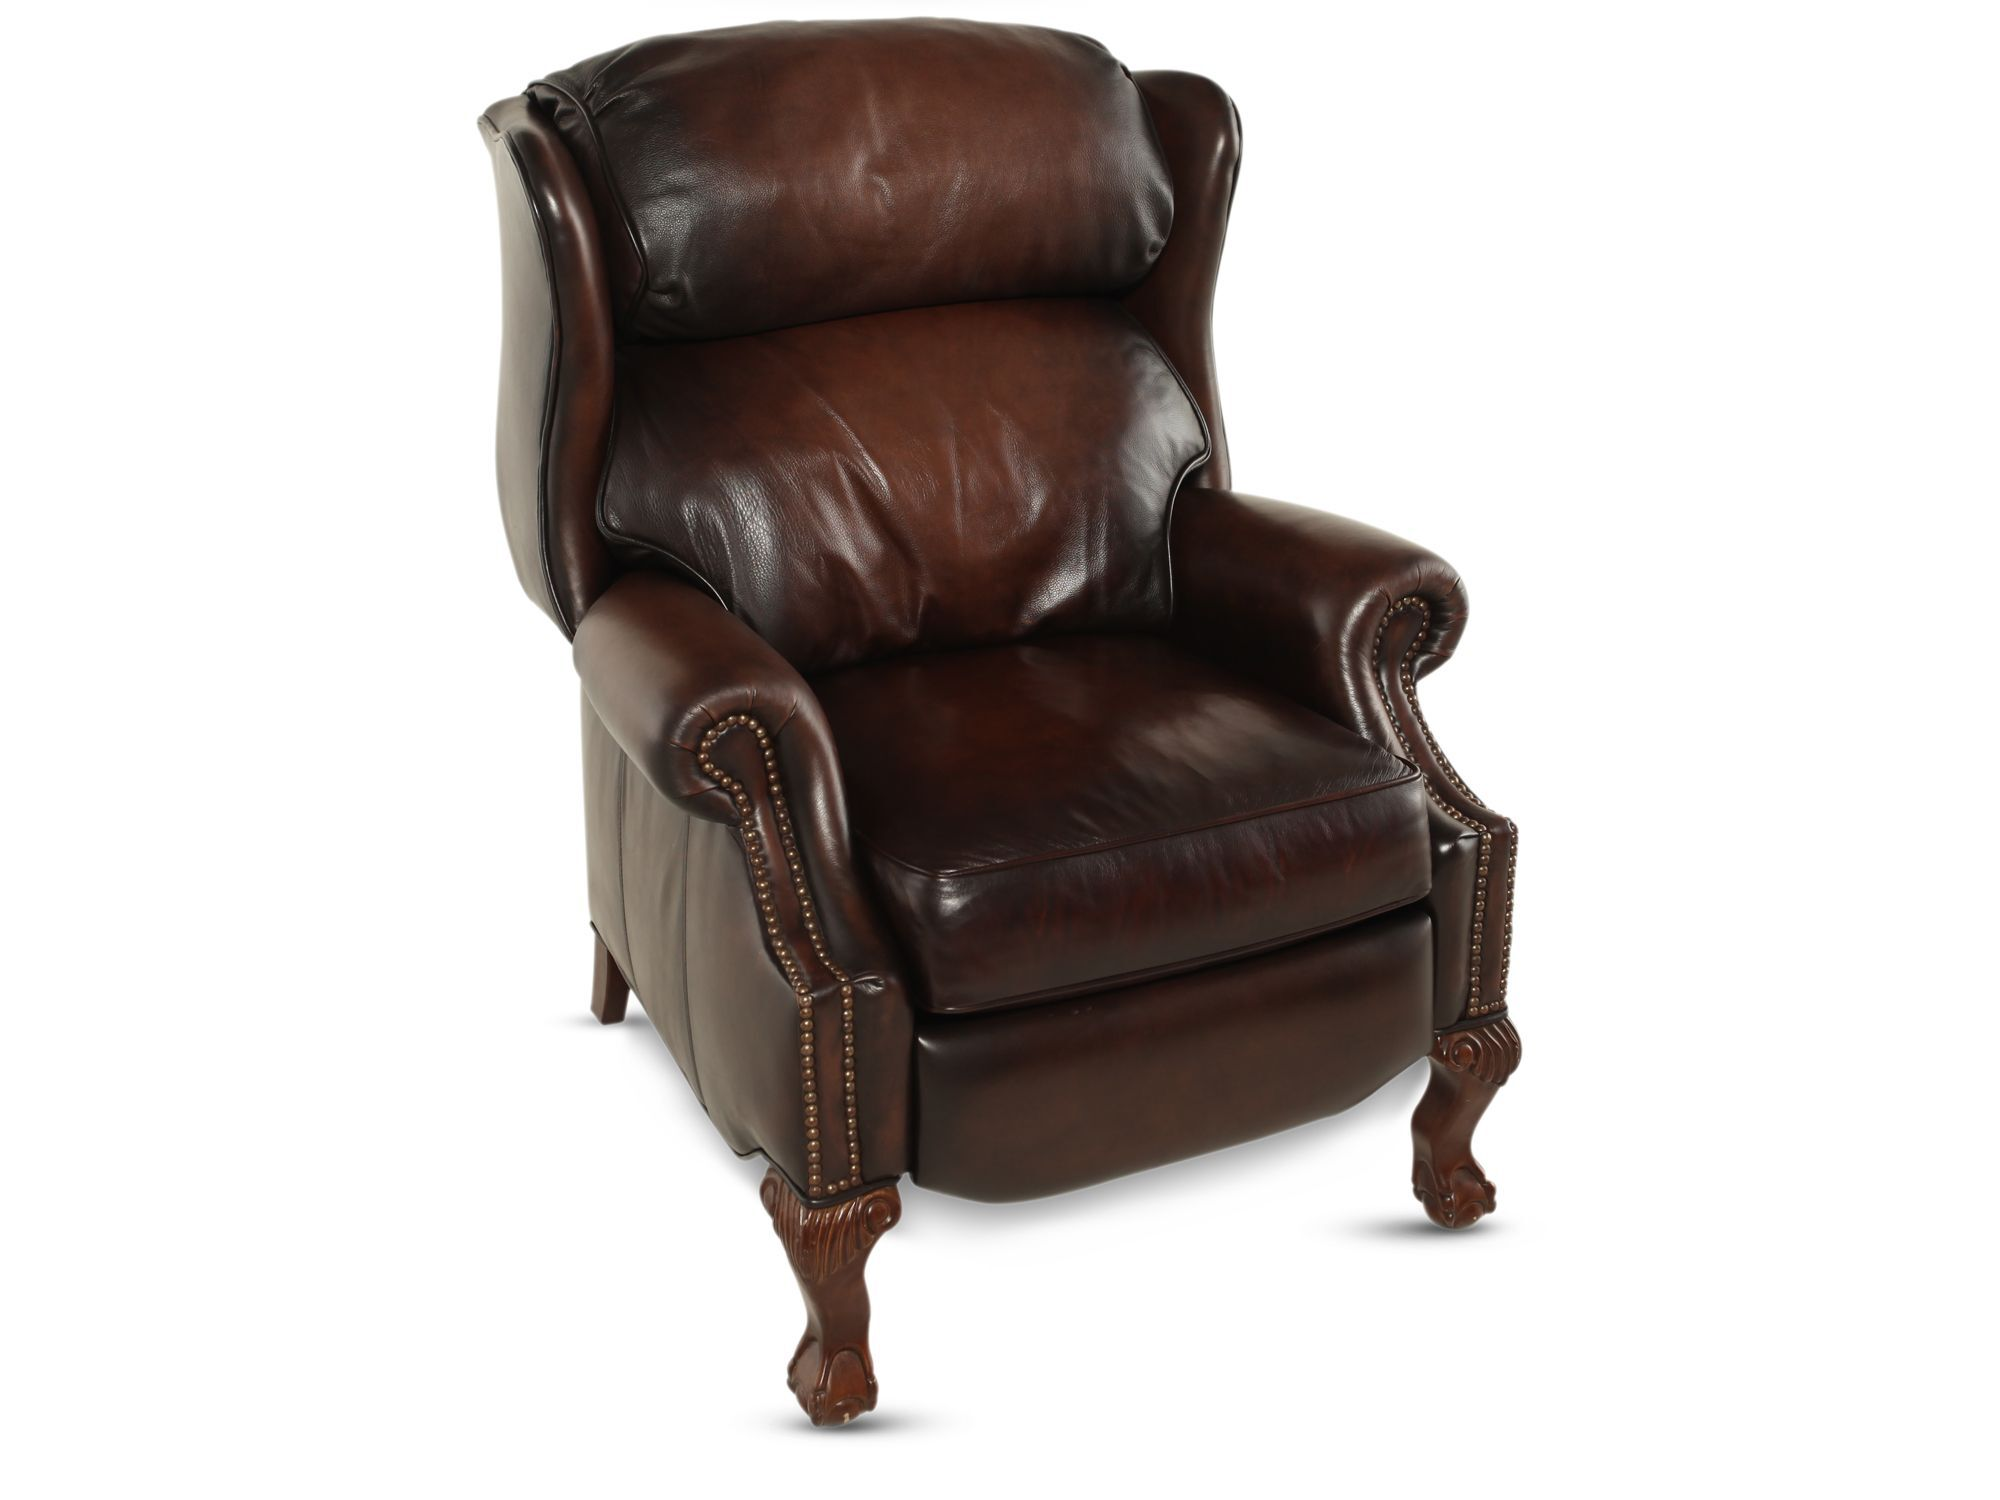 Bernhardt Leather Chair Bernhardt Briggs Leather Recliner Mathis Brothers Furniture